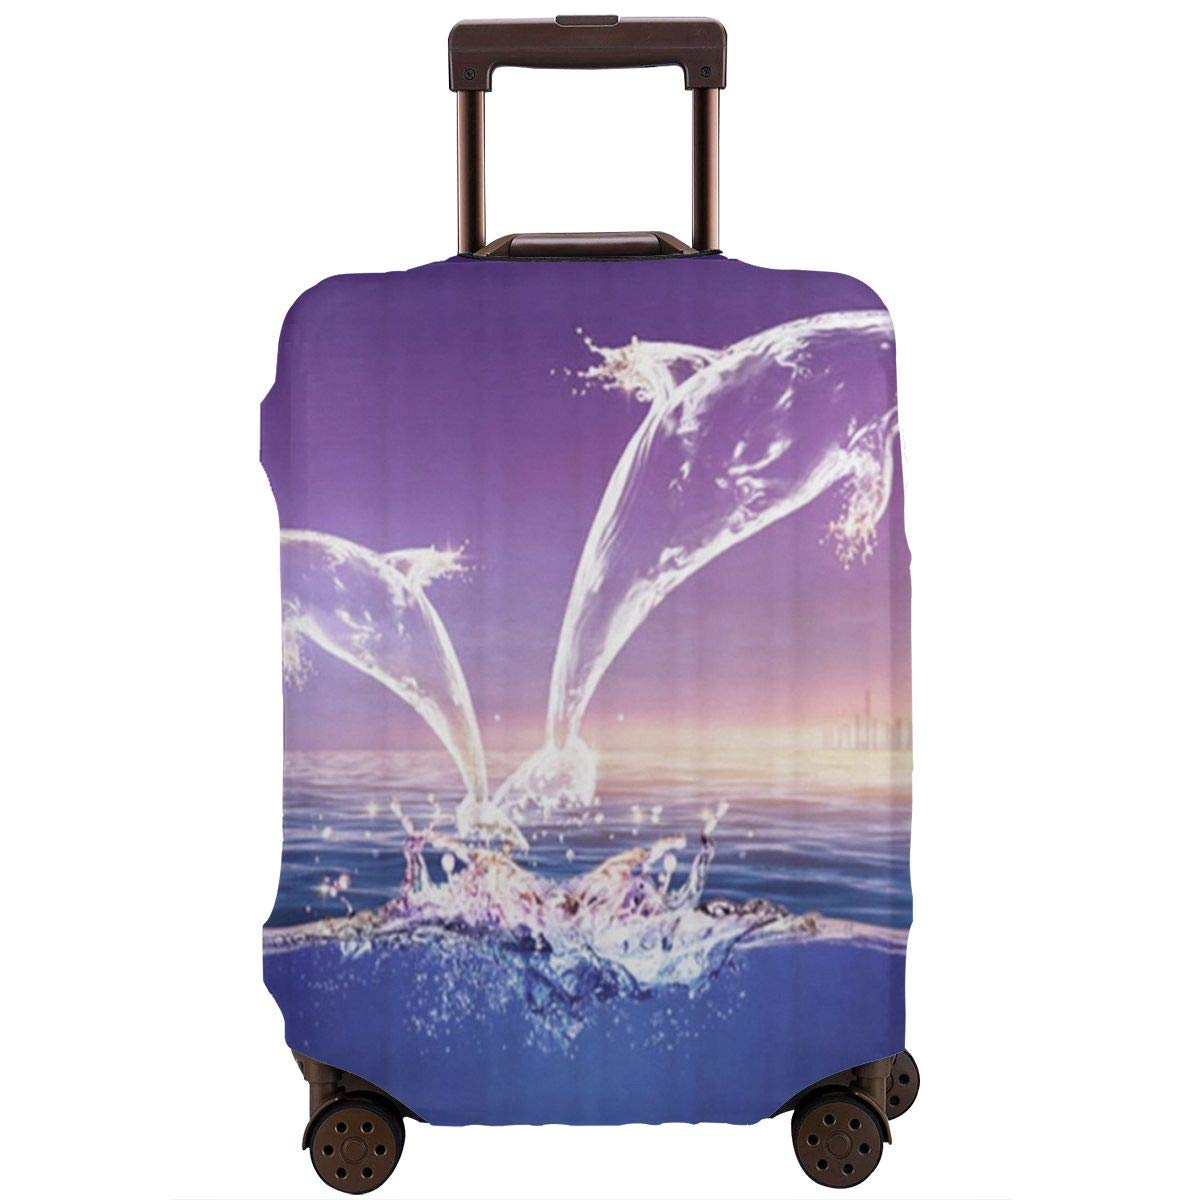 JHNDKJS Crystal Dolphin Travel Luggage Cover Baggage Suitcase Protector Fit for 12-18 Inch Luggage